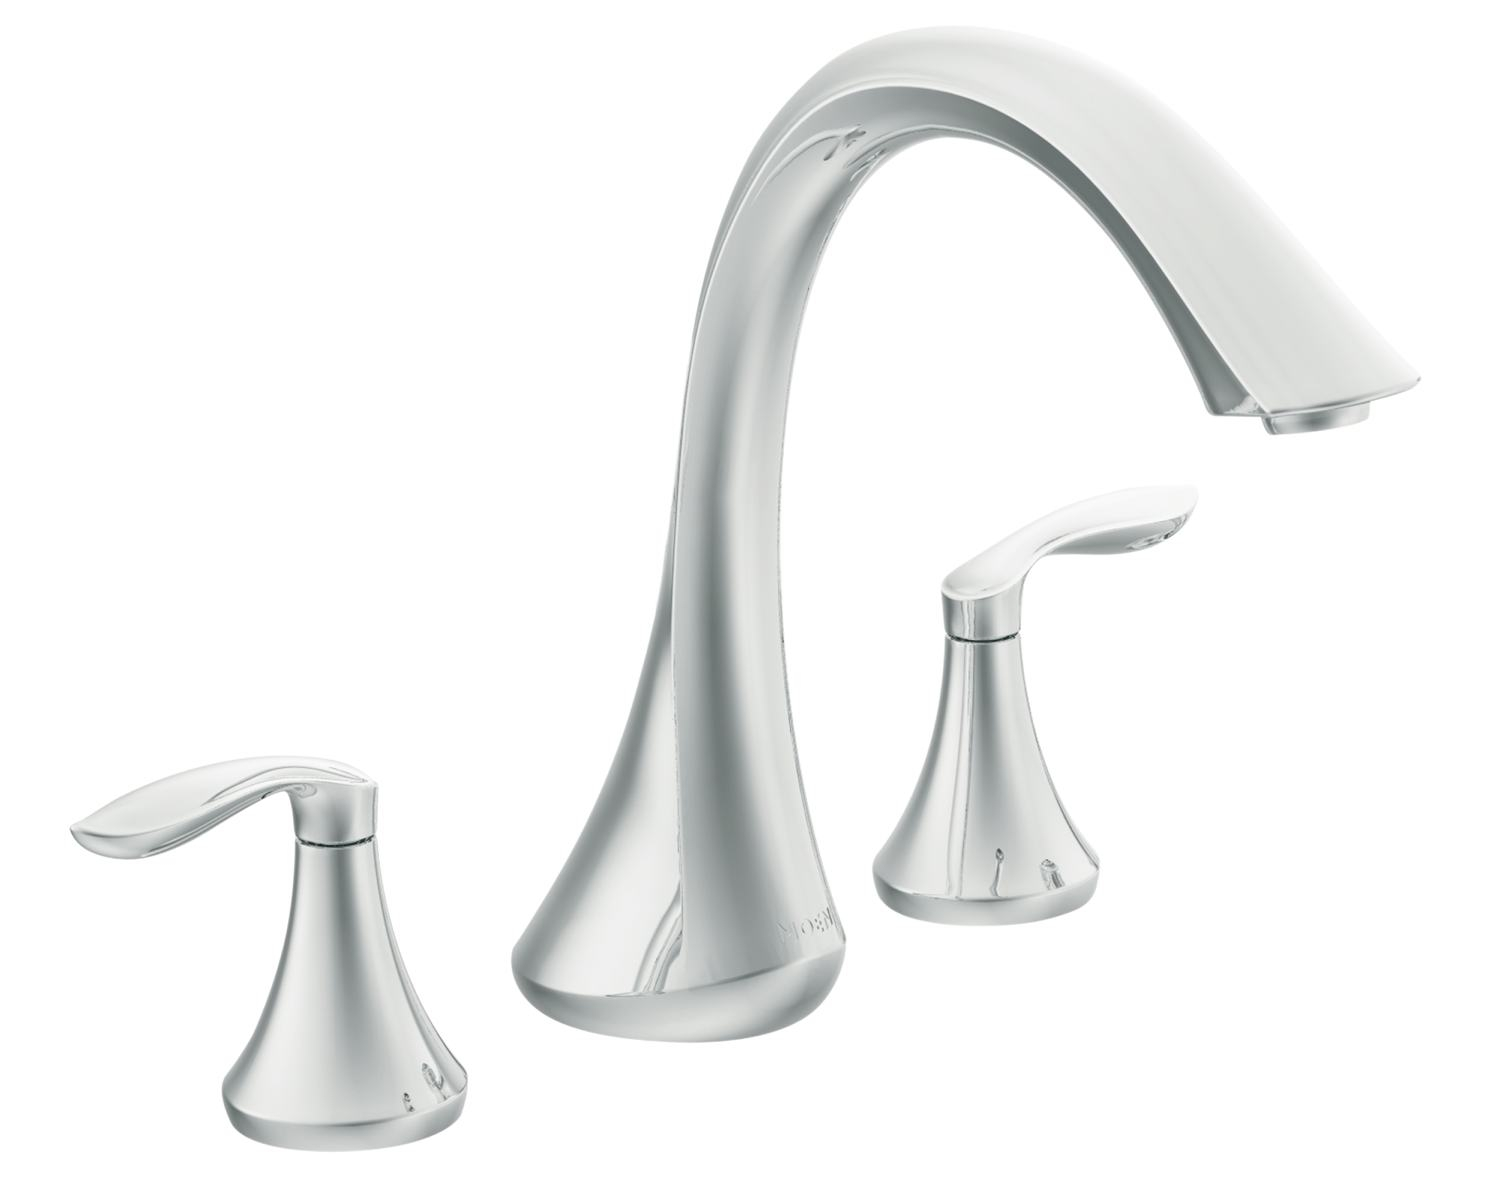 Ideas, bathroom moen faucets repair parts reviews installation intended for dimensions 1500 x 1200  .